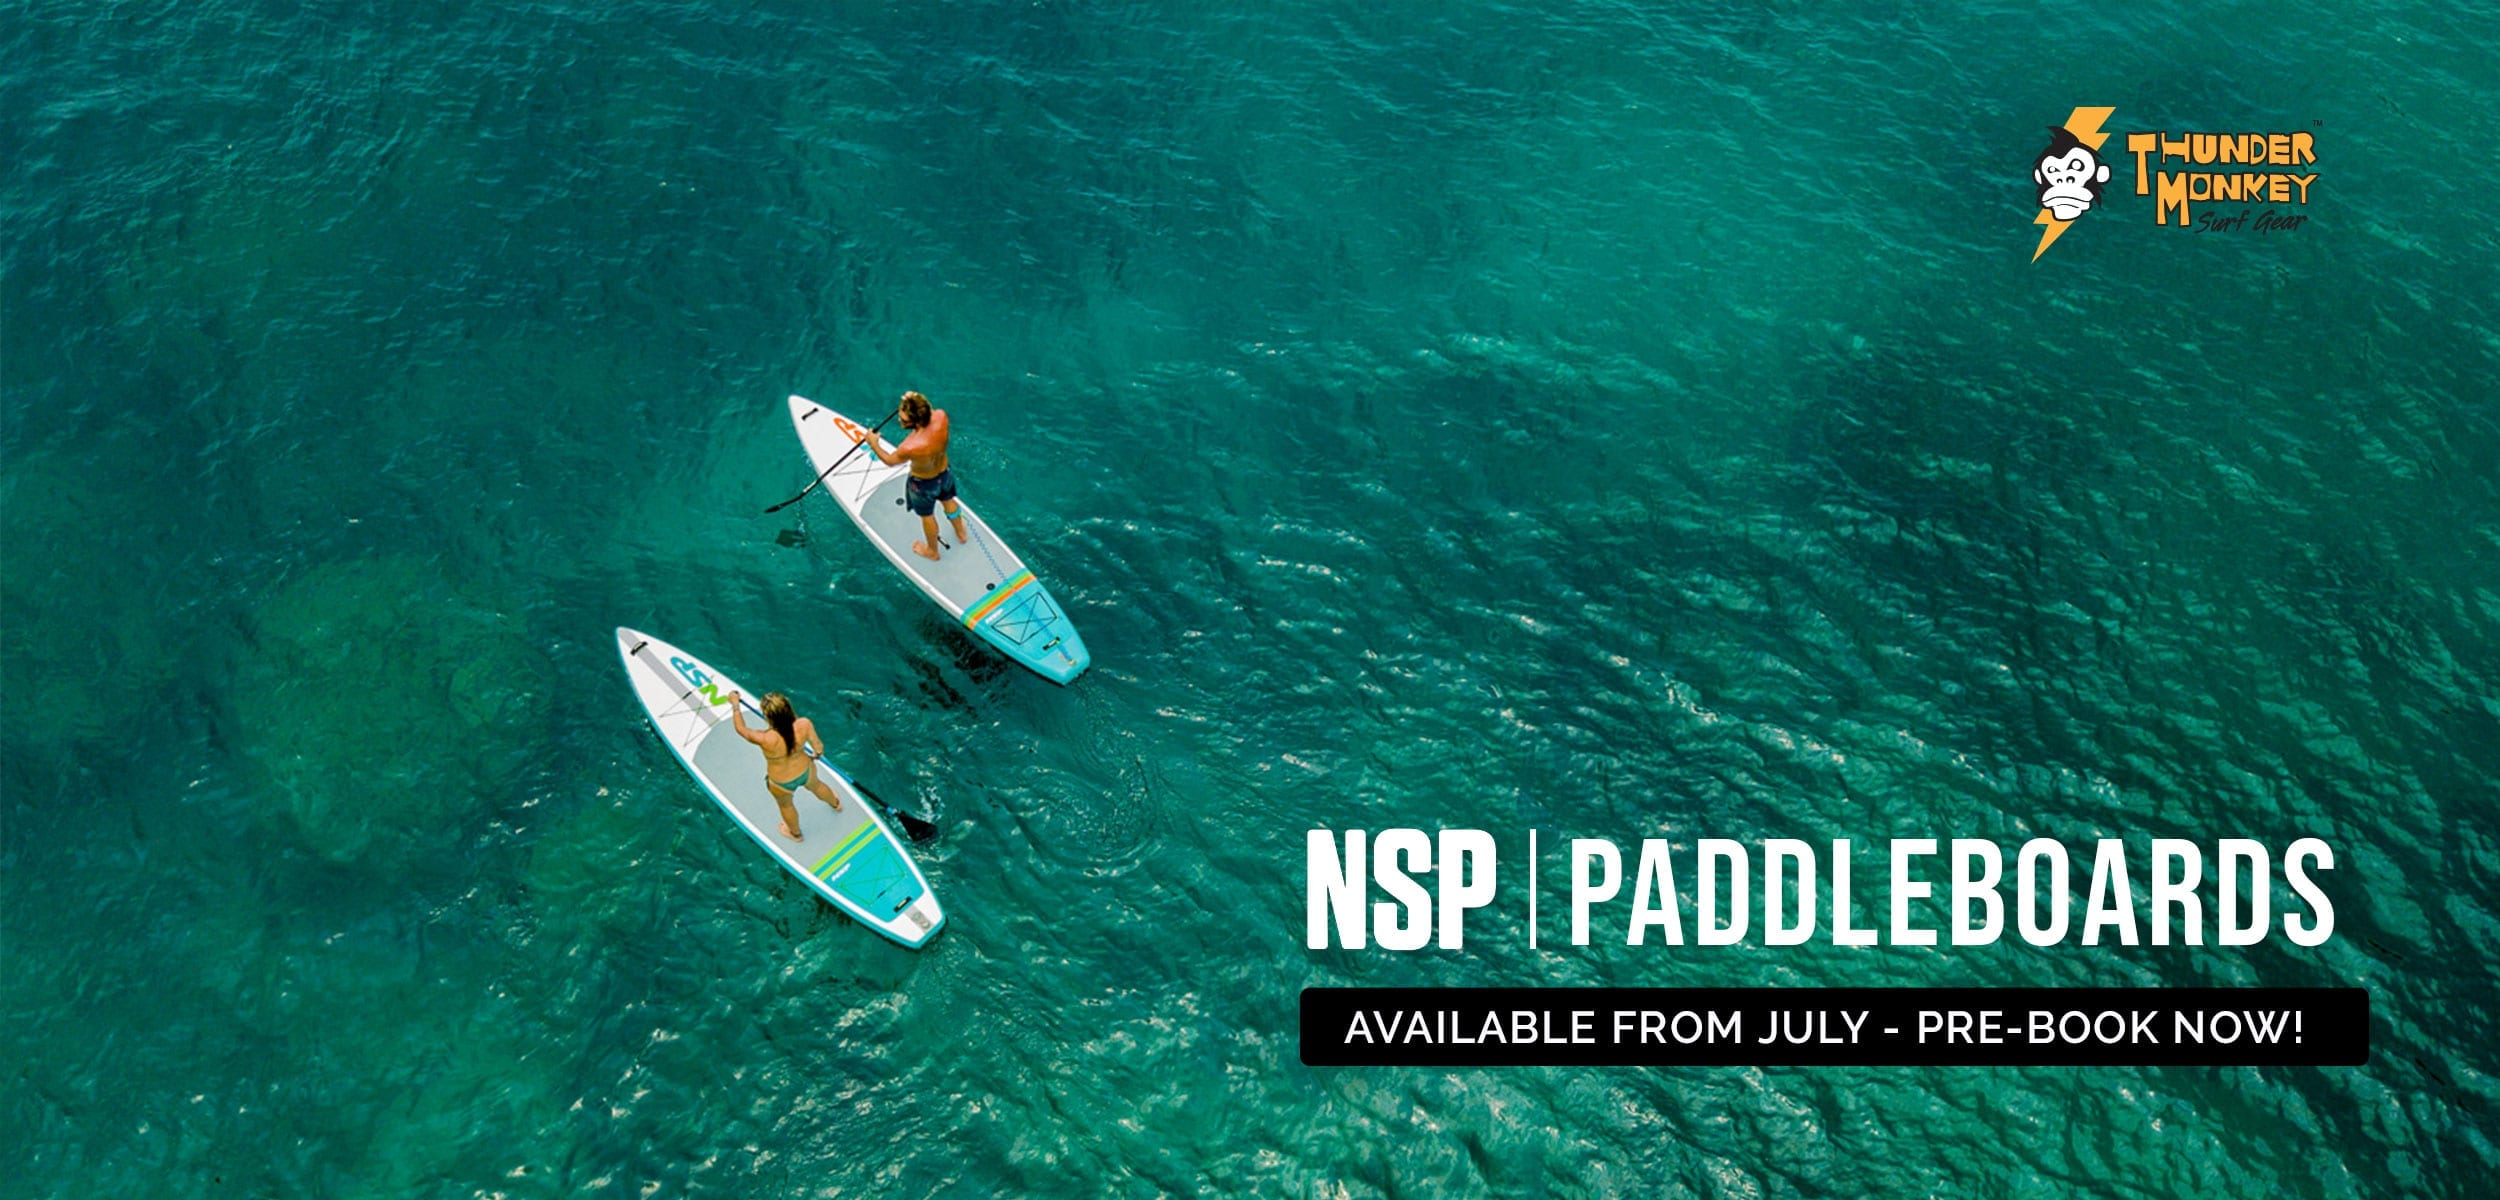 Buy Surfgear in India - NSP Paddleboards